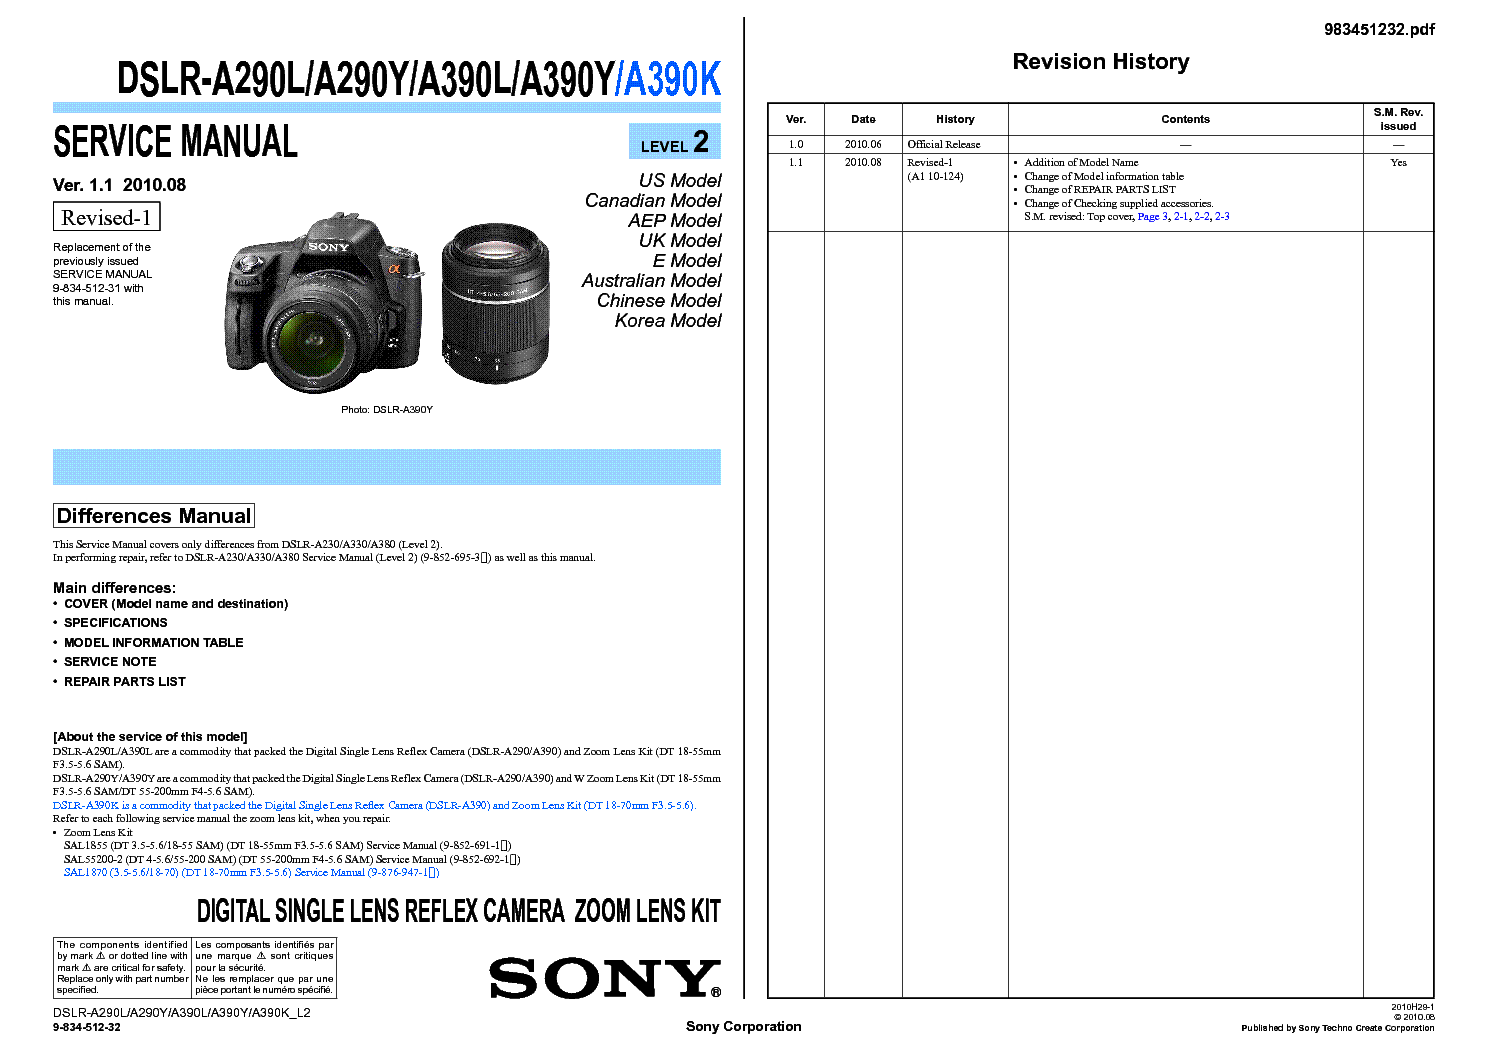 SONY DSLR-A290L DSLR-A290Y DSLR-A390L DSLR-A390Y DSLR-A390K VER1.1 L2 SM service manual (1st page)